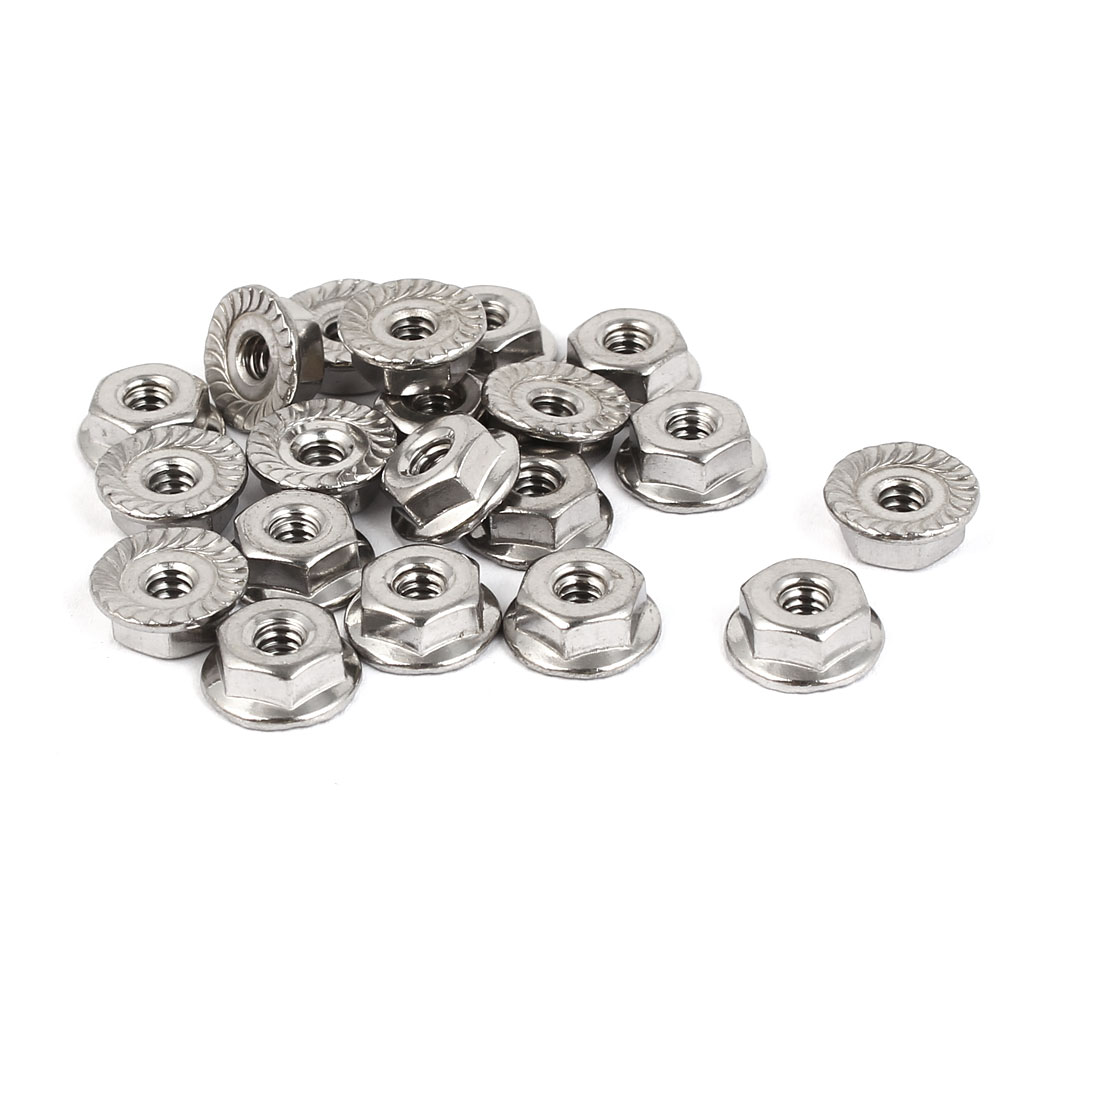 6#-32 304 Stainless Steel Serrated Flange Hex Machine Screw Lock Nuts 20pcs